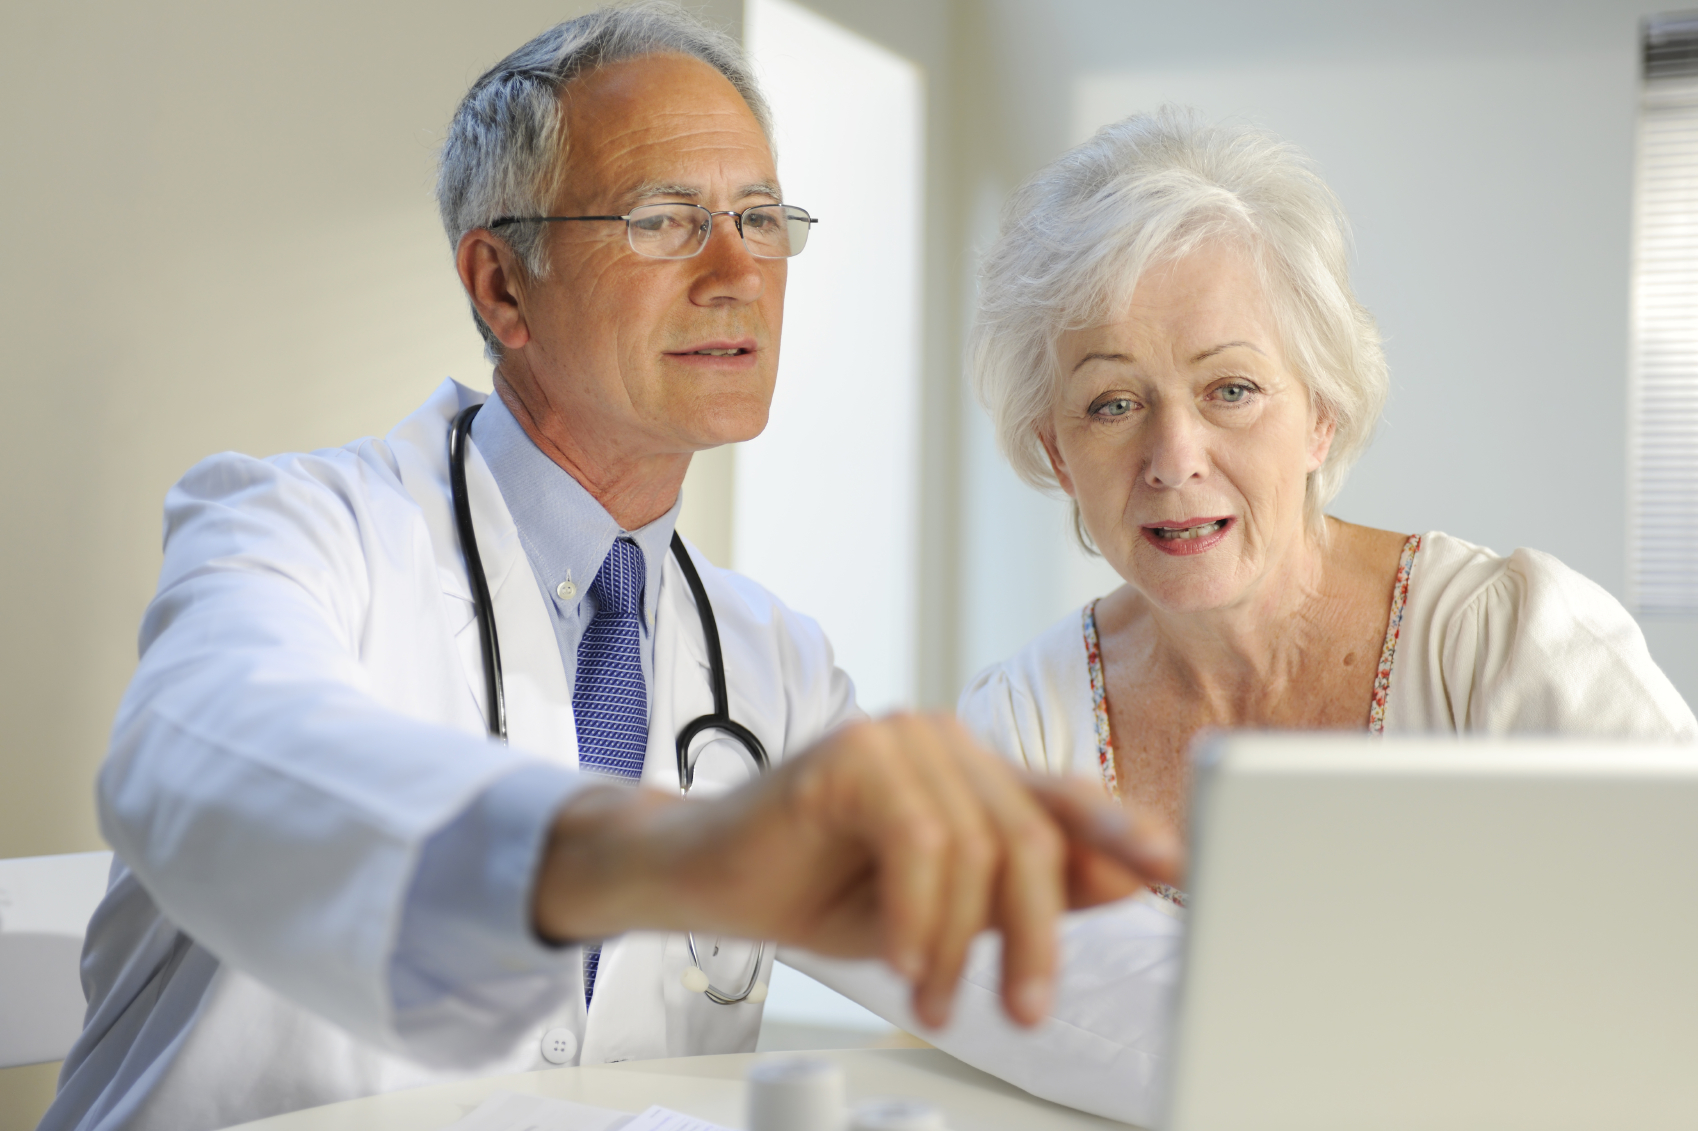 White male doctor and older white female patient look at a computer screen